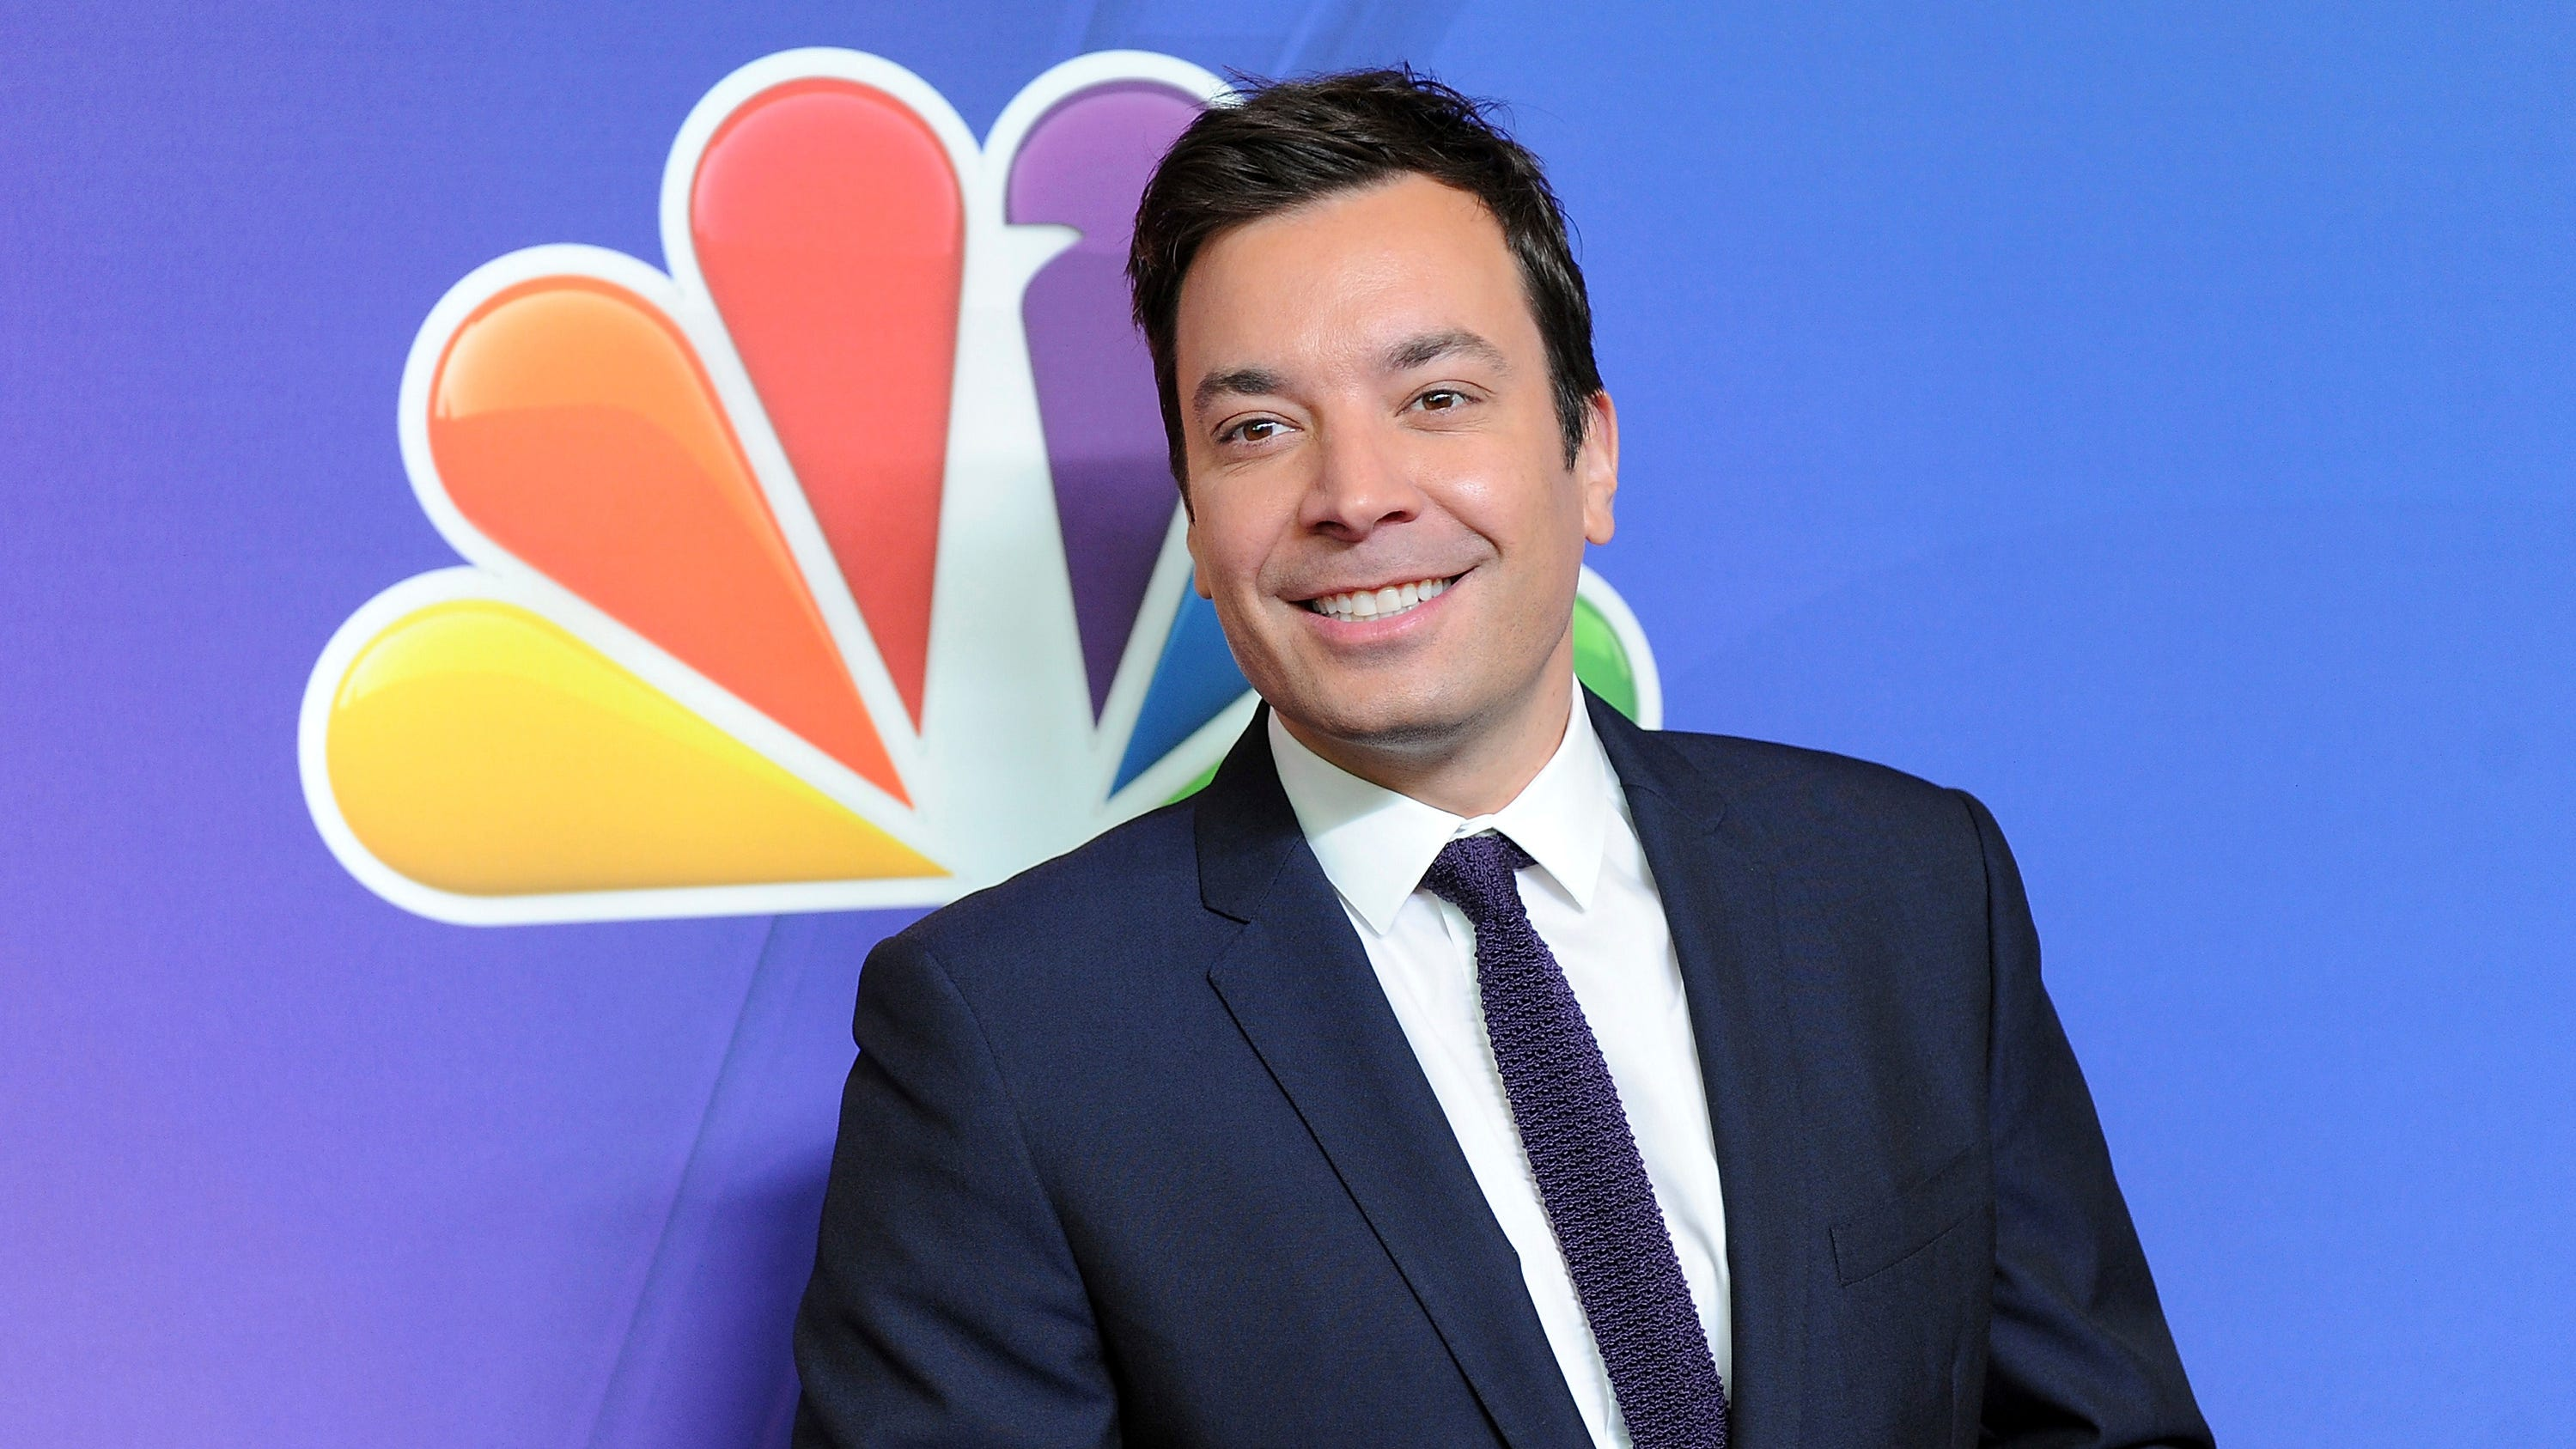 Fallon reveals why first Democratic debate will be held at Taco Bell at 2 a.m.